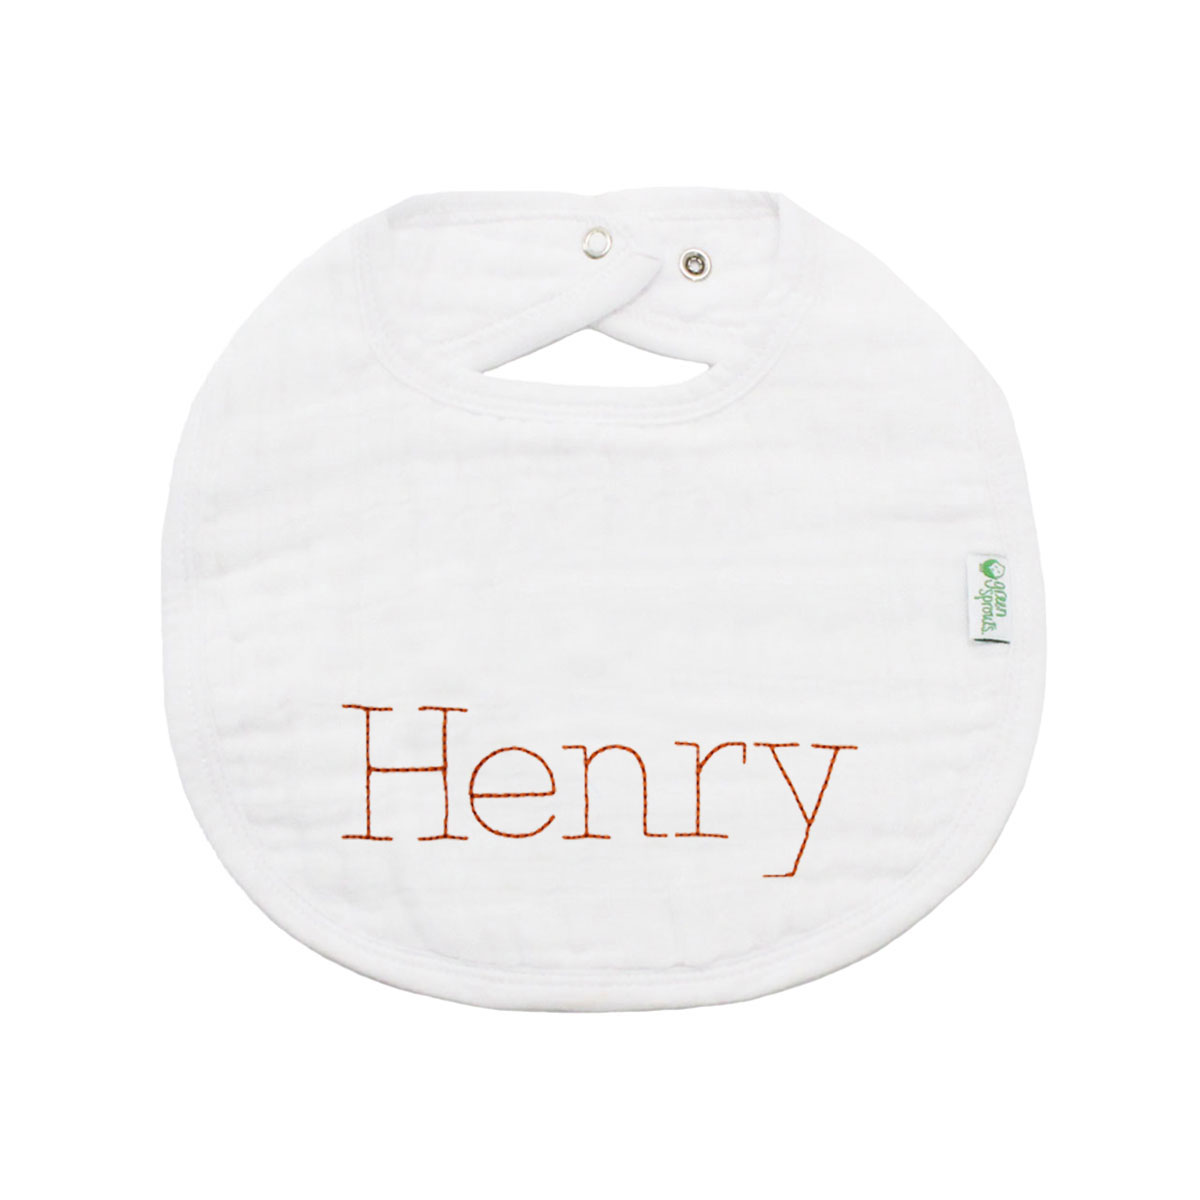 The Tot Organic Cotton White Bib with Personalized Monogram in Henry